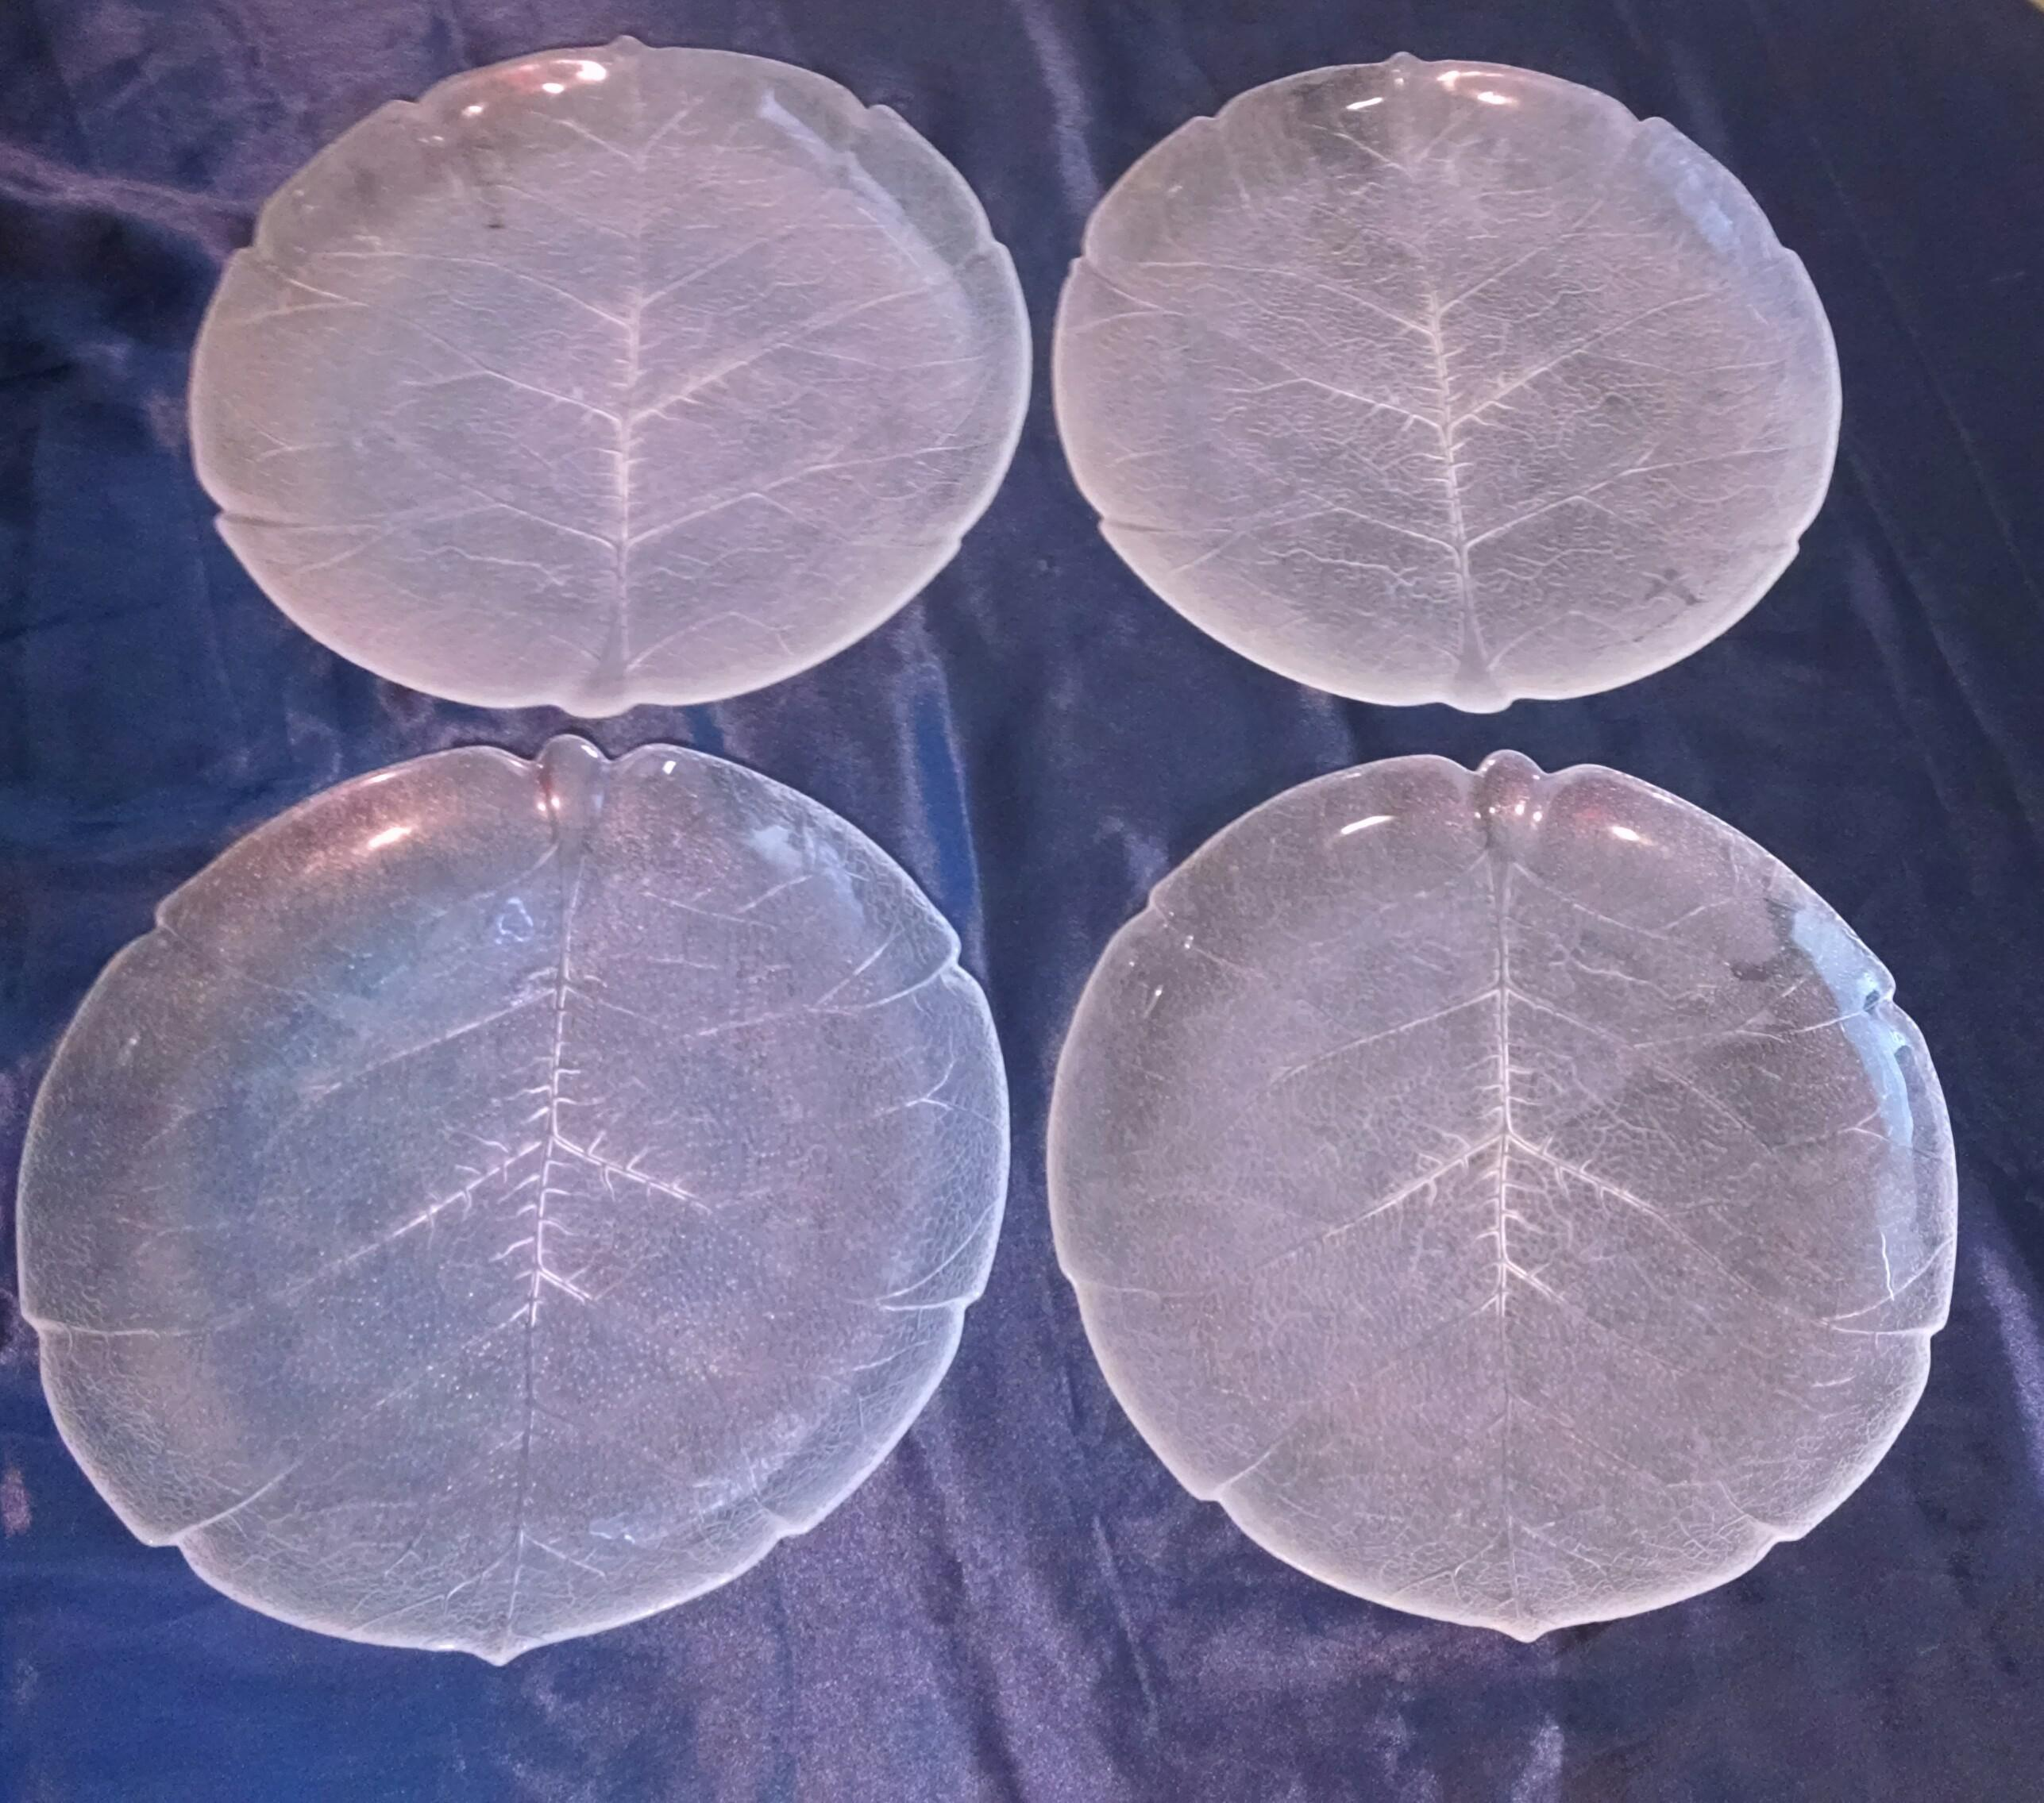 Arcoroc Aspen Leaf Clear Glass 11-Inch Dinner Plates - Set of 4 - Image : arcoroc aspen dinnerware - pezcame.com